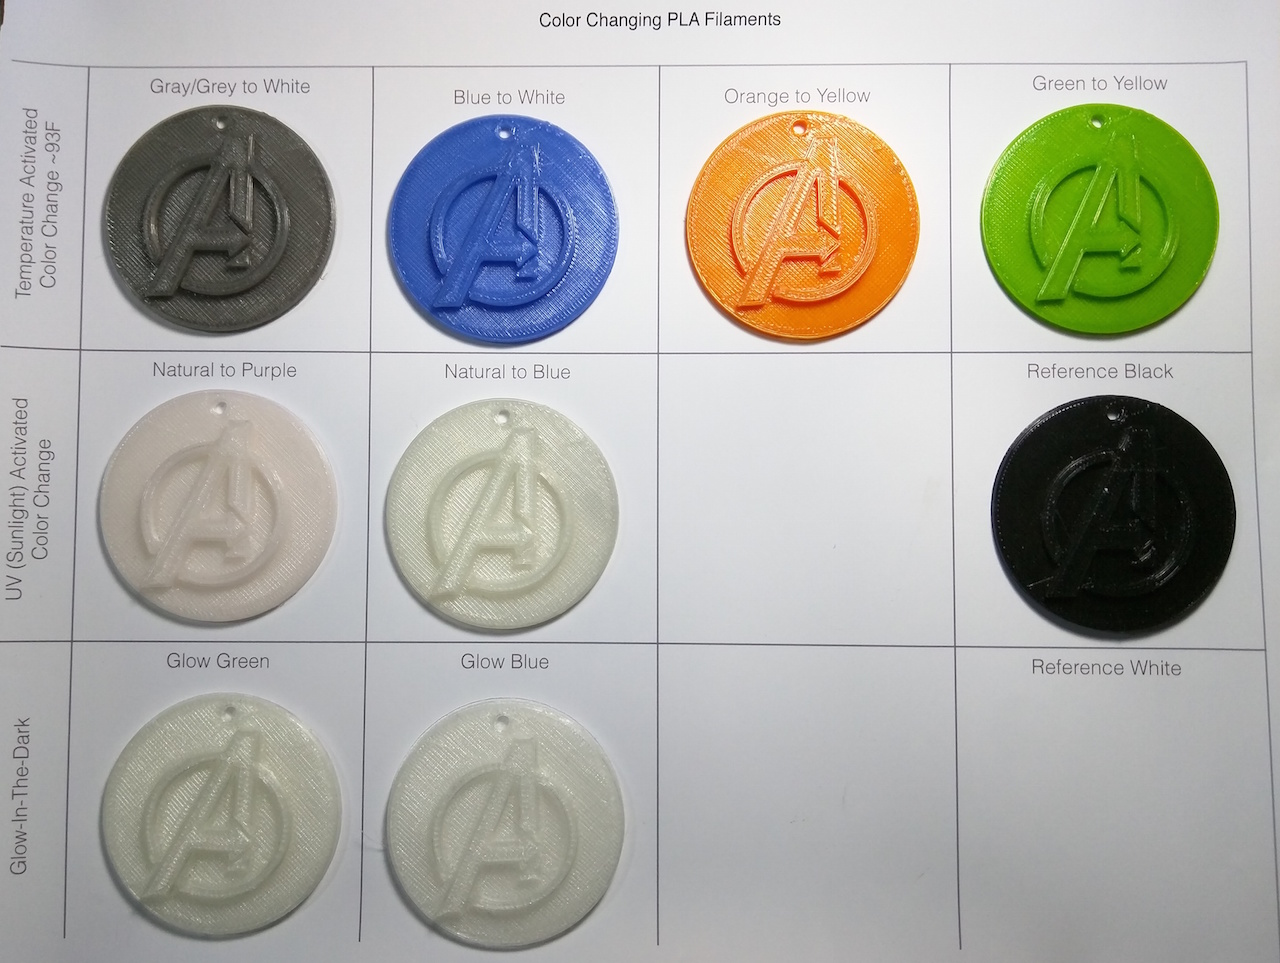 Color Changing PLA Filaments - 3D Printing / Materials